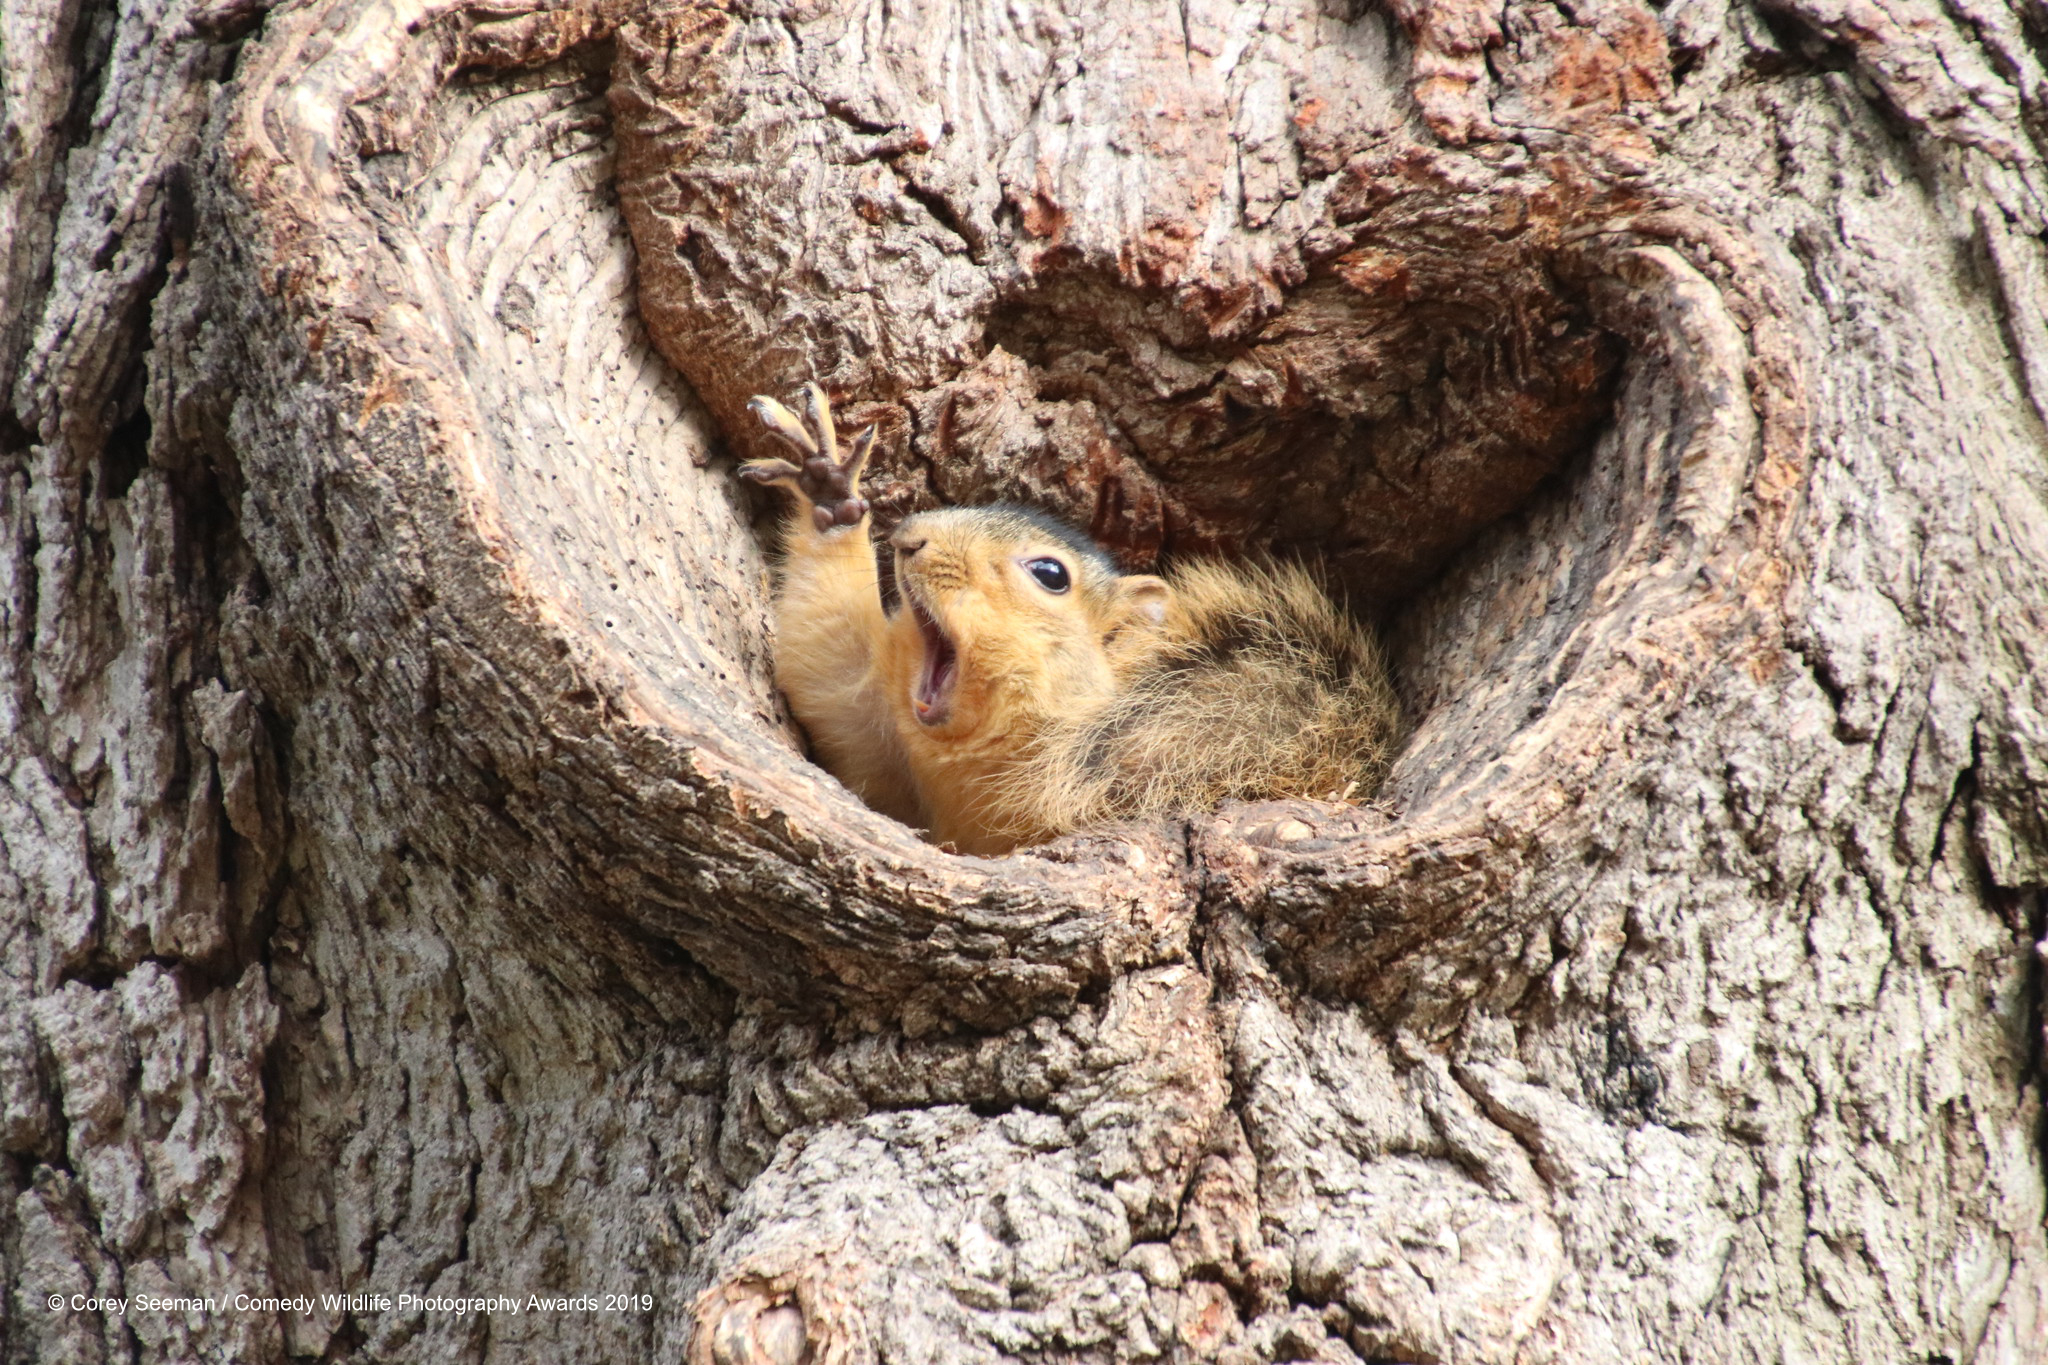 Fox Squirrel trapped in a tree hole.